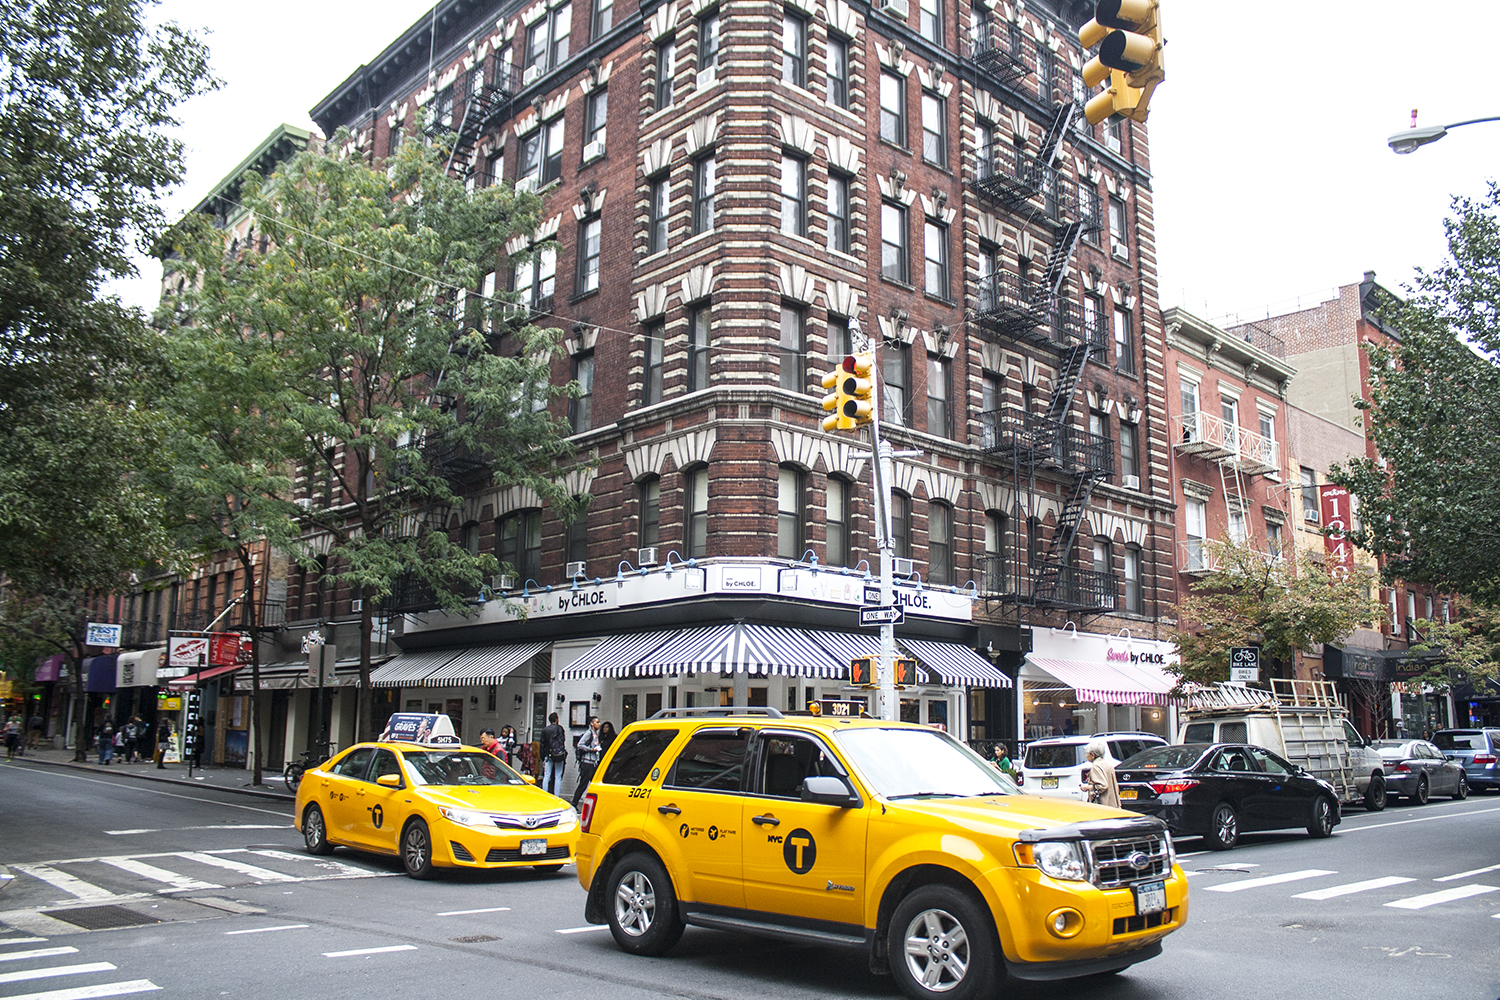 04nyc-newyork-greenwichvillage-travel-diary-architecture-style